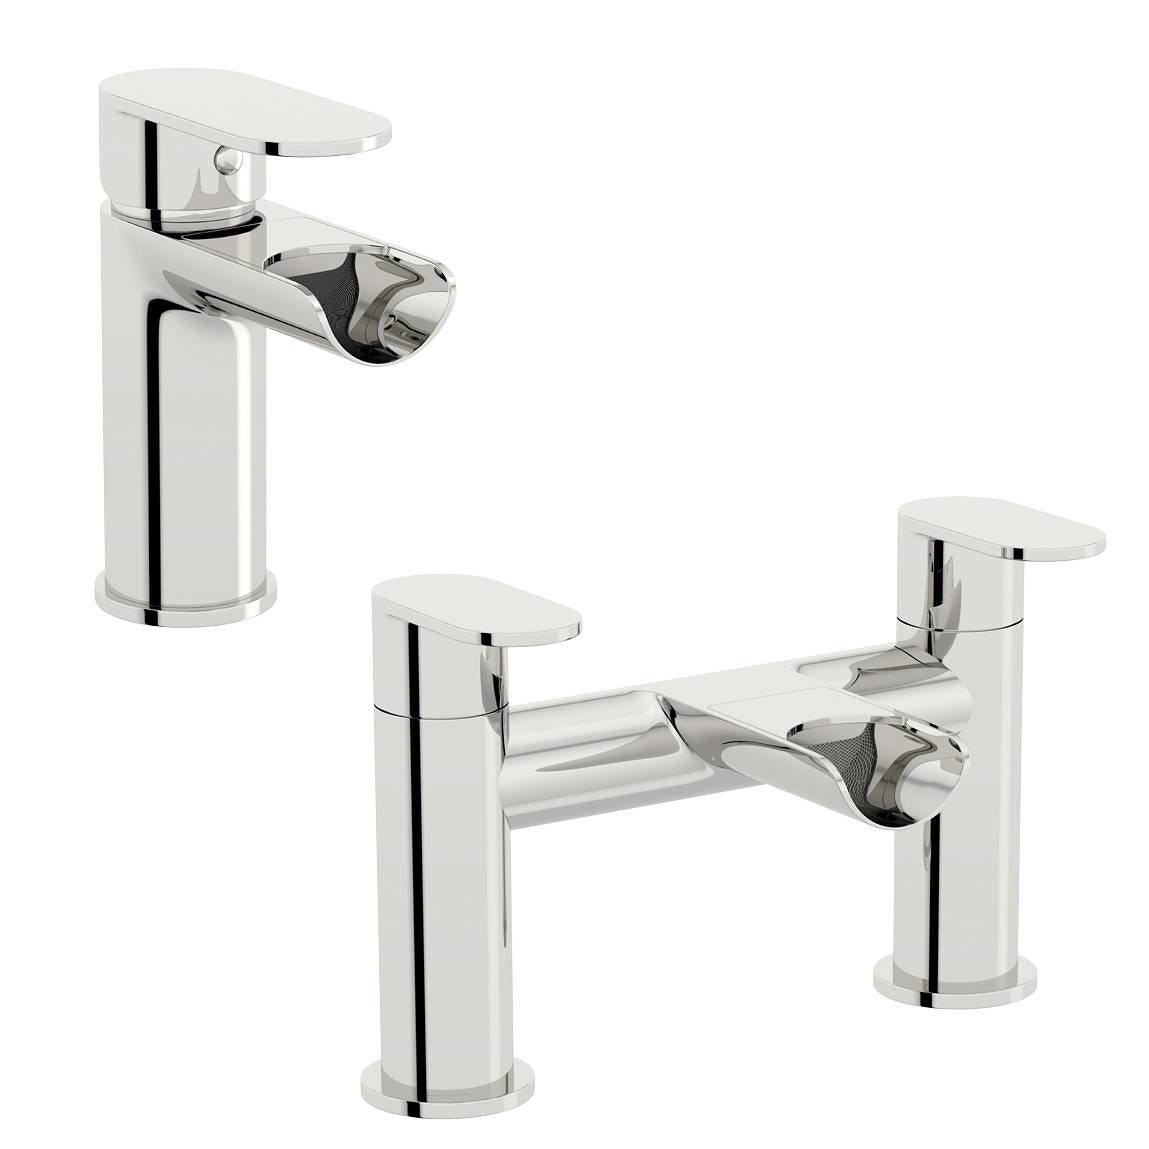 Eden basin and bath mixer tap pack